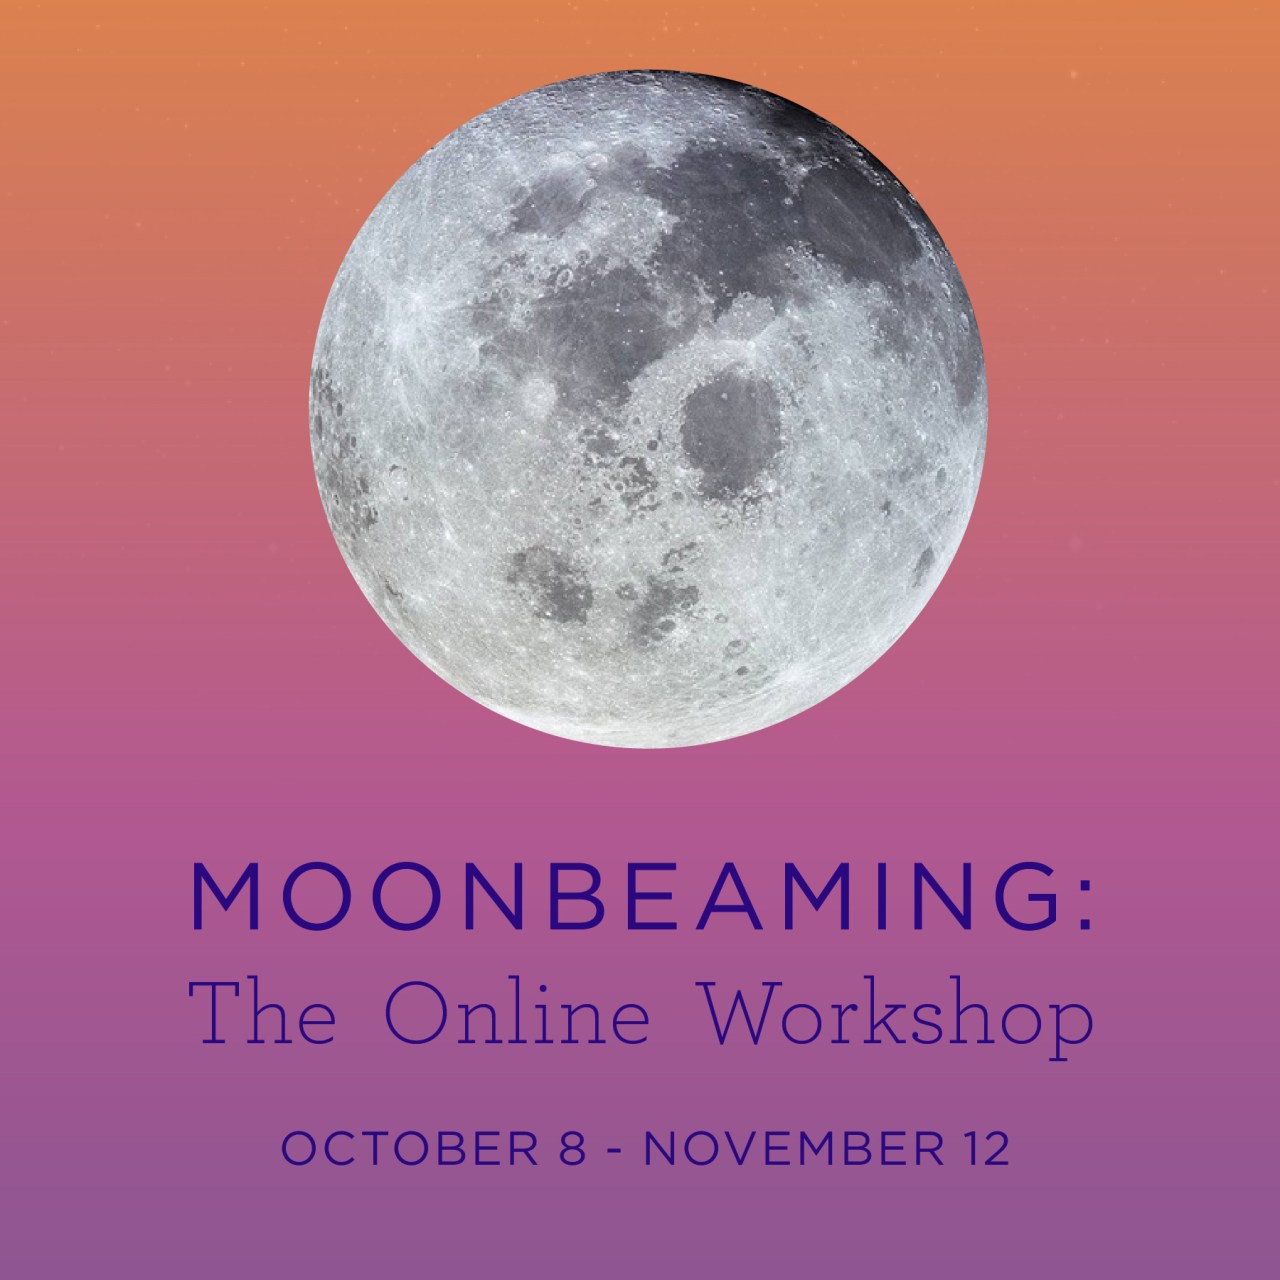 Moonbeaming: The Online Workshop by Sarah Faith Gottesdiener 2018